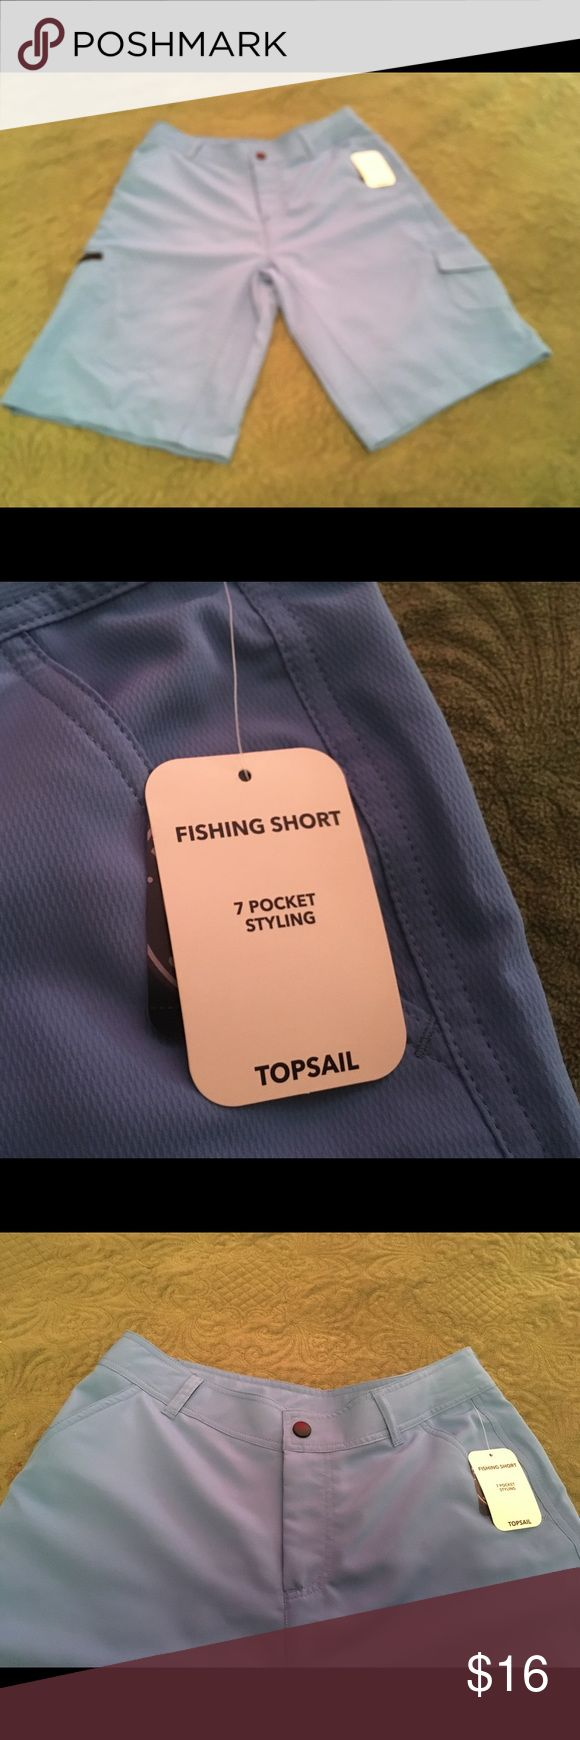 Topsail Blue Fishing shorts XL 🐠🦈🐋🐟 XL blue Topsail Fishing shorts, 7 pocket Styling, 100% Polyester. Perfect for wearing in the water. Great for summer activities. J. Khaki Shorts Athletic